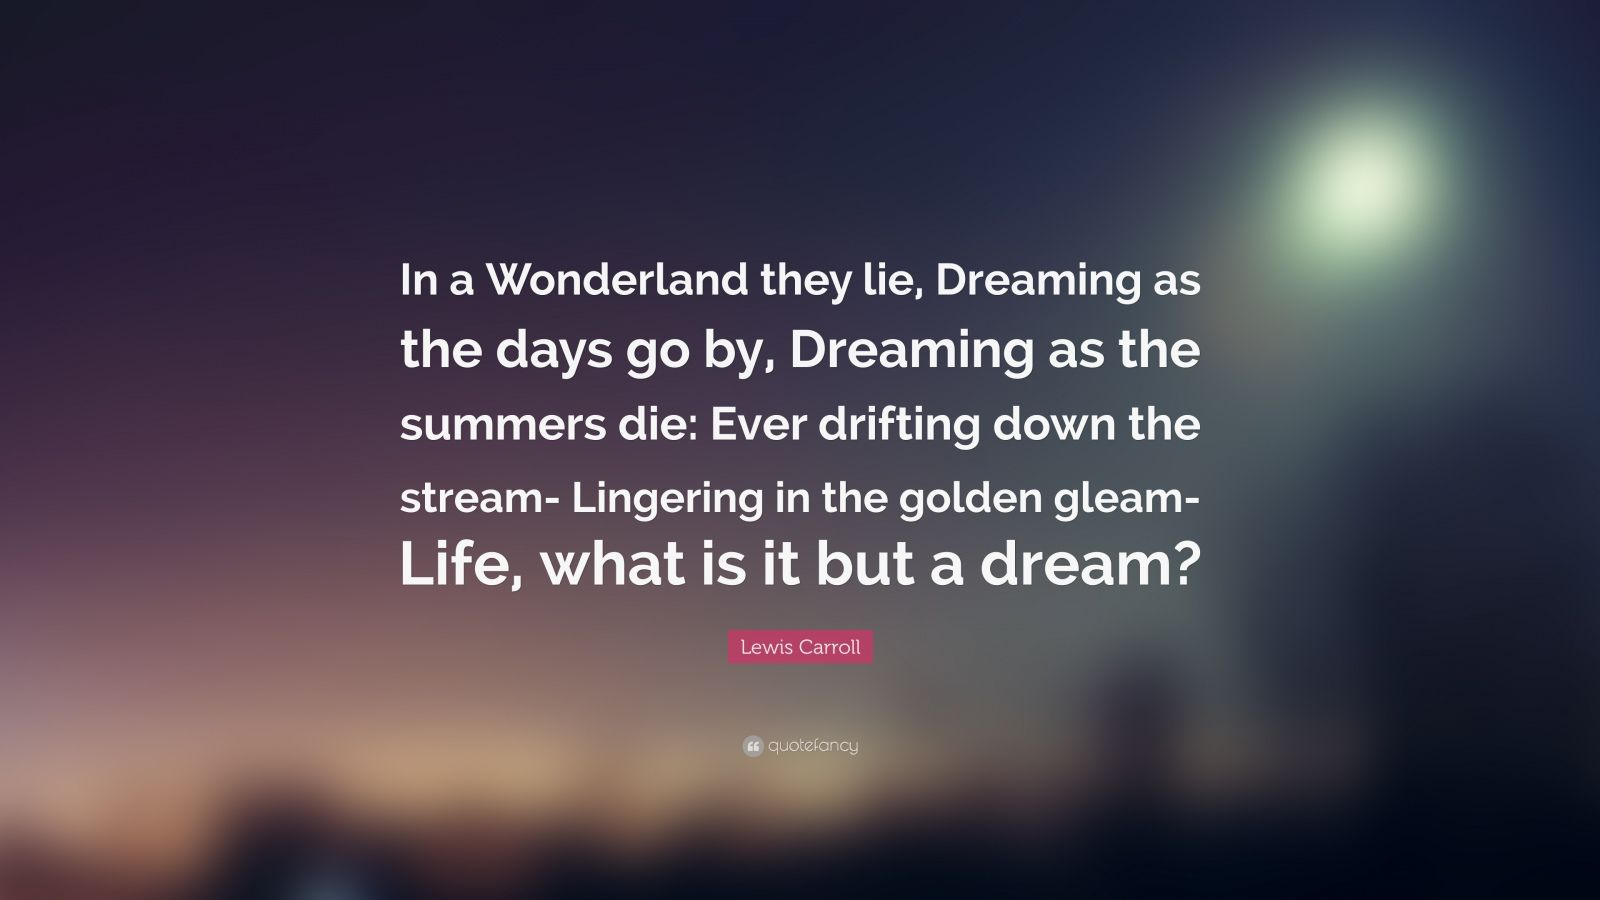 """Lewis Carroll Quote: """"In a Wonderland they lie, Dreaming as the days go by, Dreaming as the summers die: Ever drifting down the stream- Lingering in the golden gleam- Life, what is it but a dream?"""""""